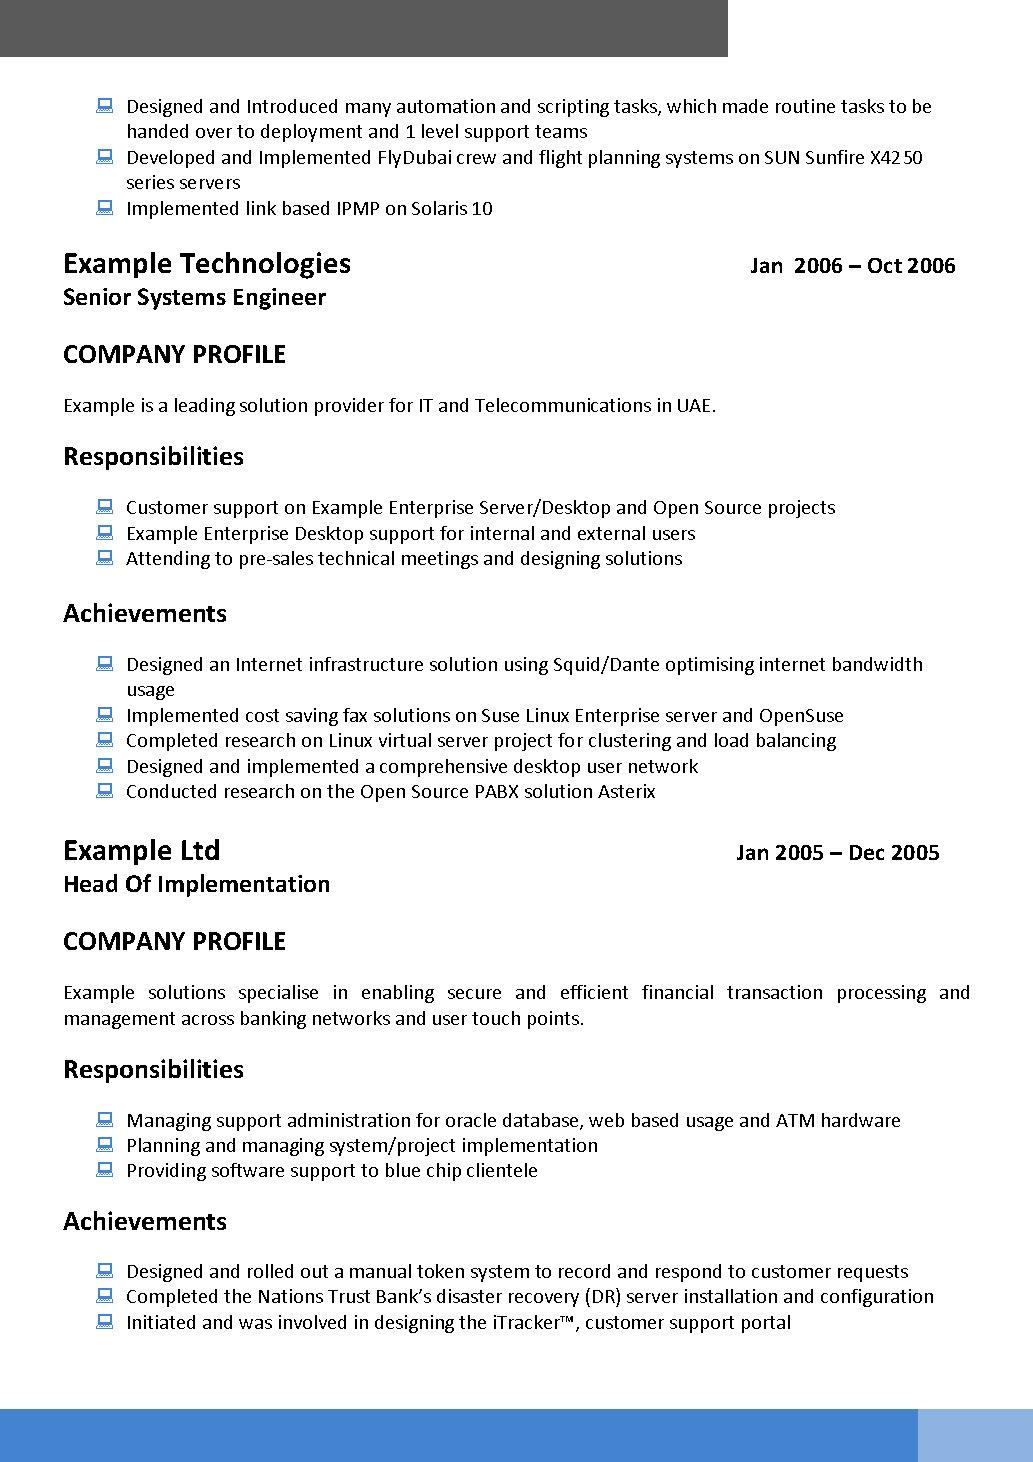 jpeg sample resume 1 these sample resumes are meant to show you the